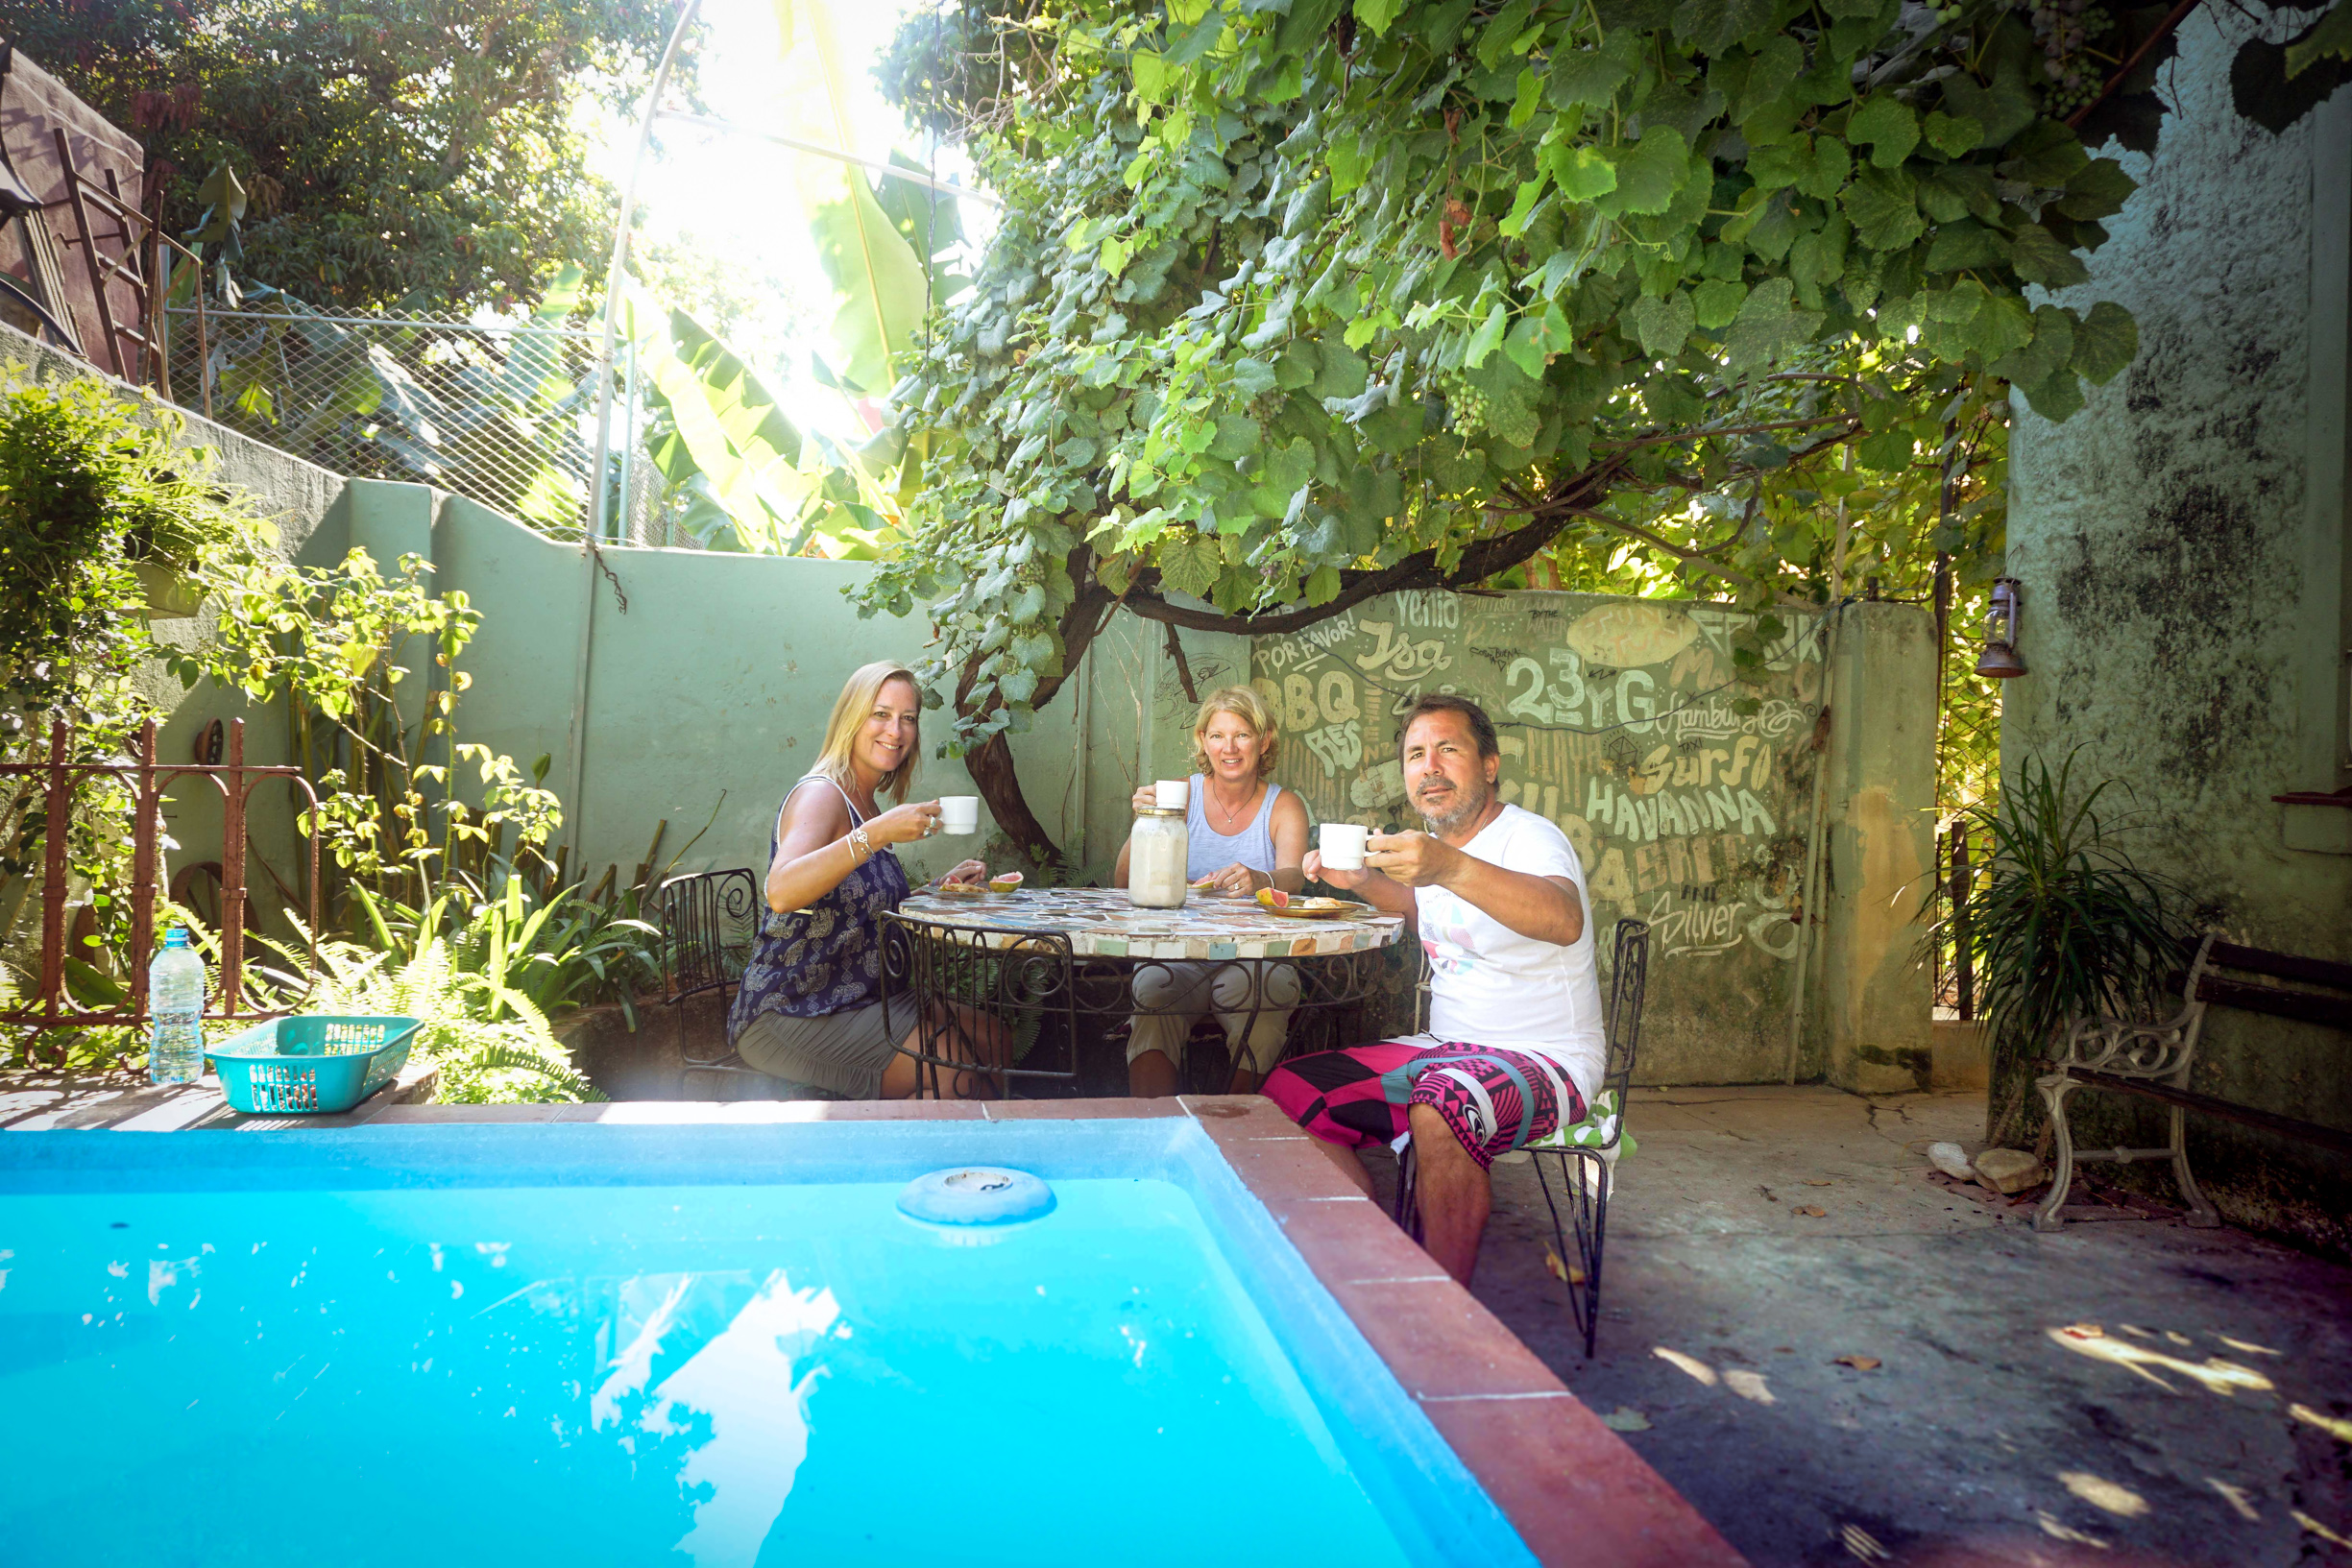 Every morning began with tuna sandwiches and cafecitos. This magical backyard made everything taste better and last longer.